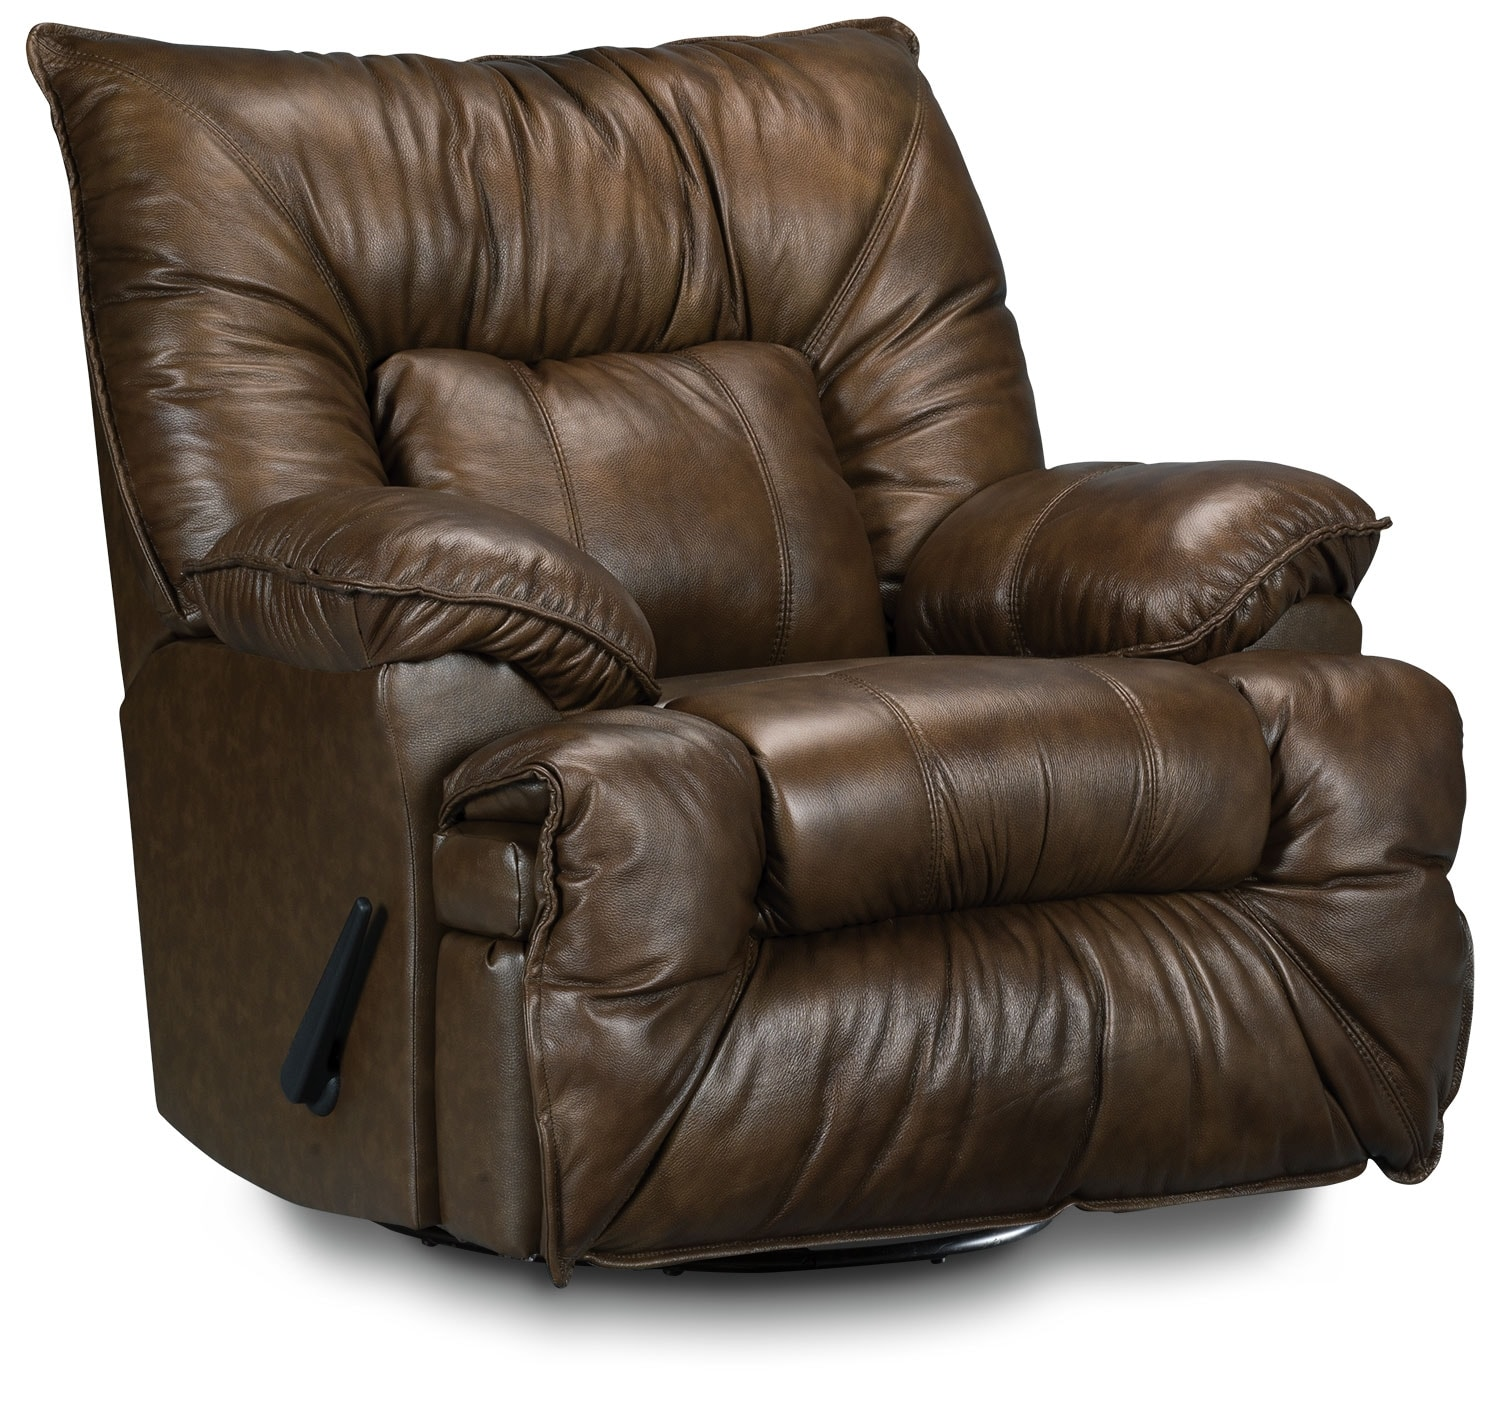 Living Room Furniture - Designed2B Recliner 7726 Leather-Look Fabric Swivel Glider Chair - Walnut